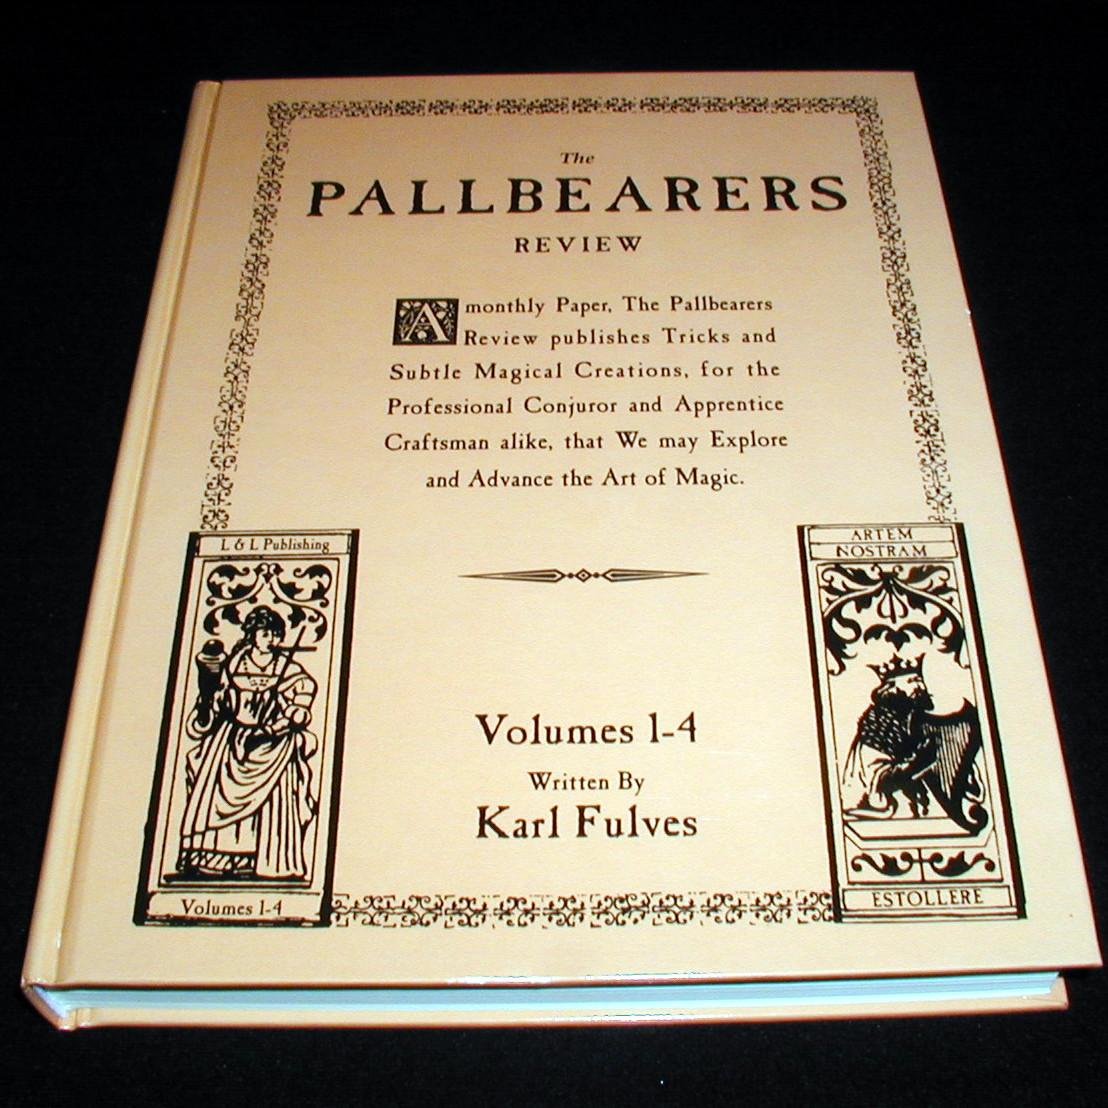 Karl Fulves - Pallbearers Review vols 1-4